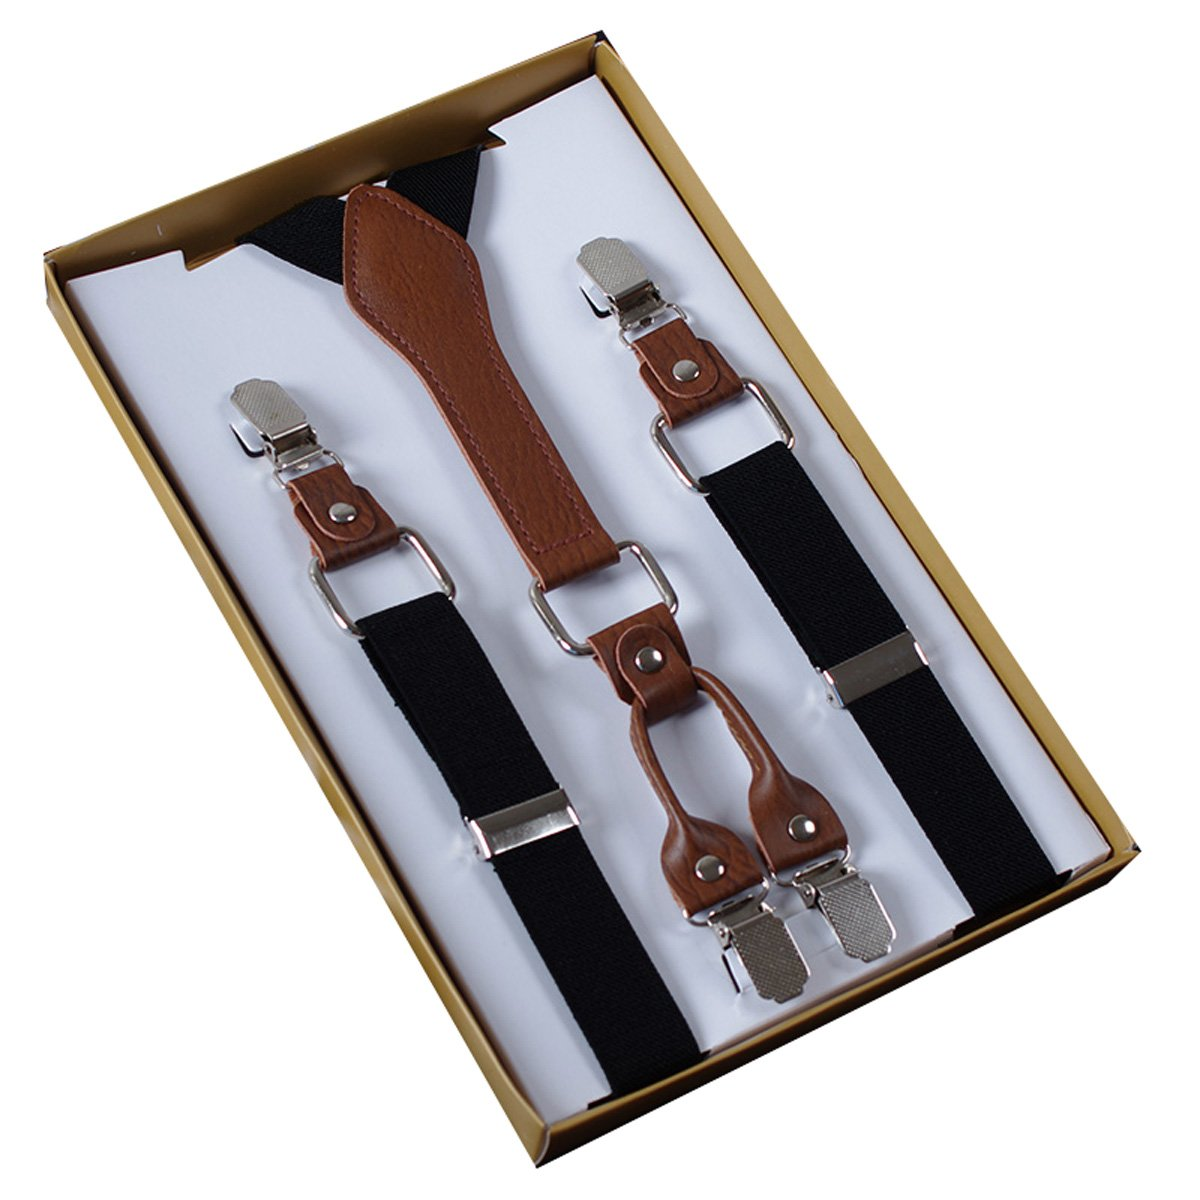 Panegy Men's Women's 4 Clips Adjustable Suspenders Elastic Y Shape Braces-Black WE18FS1290